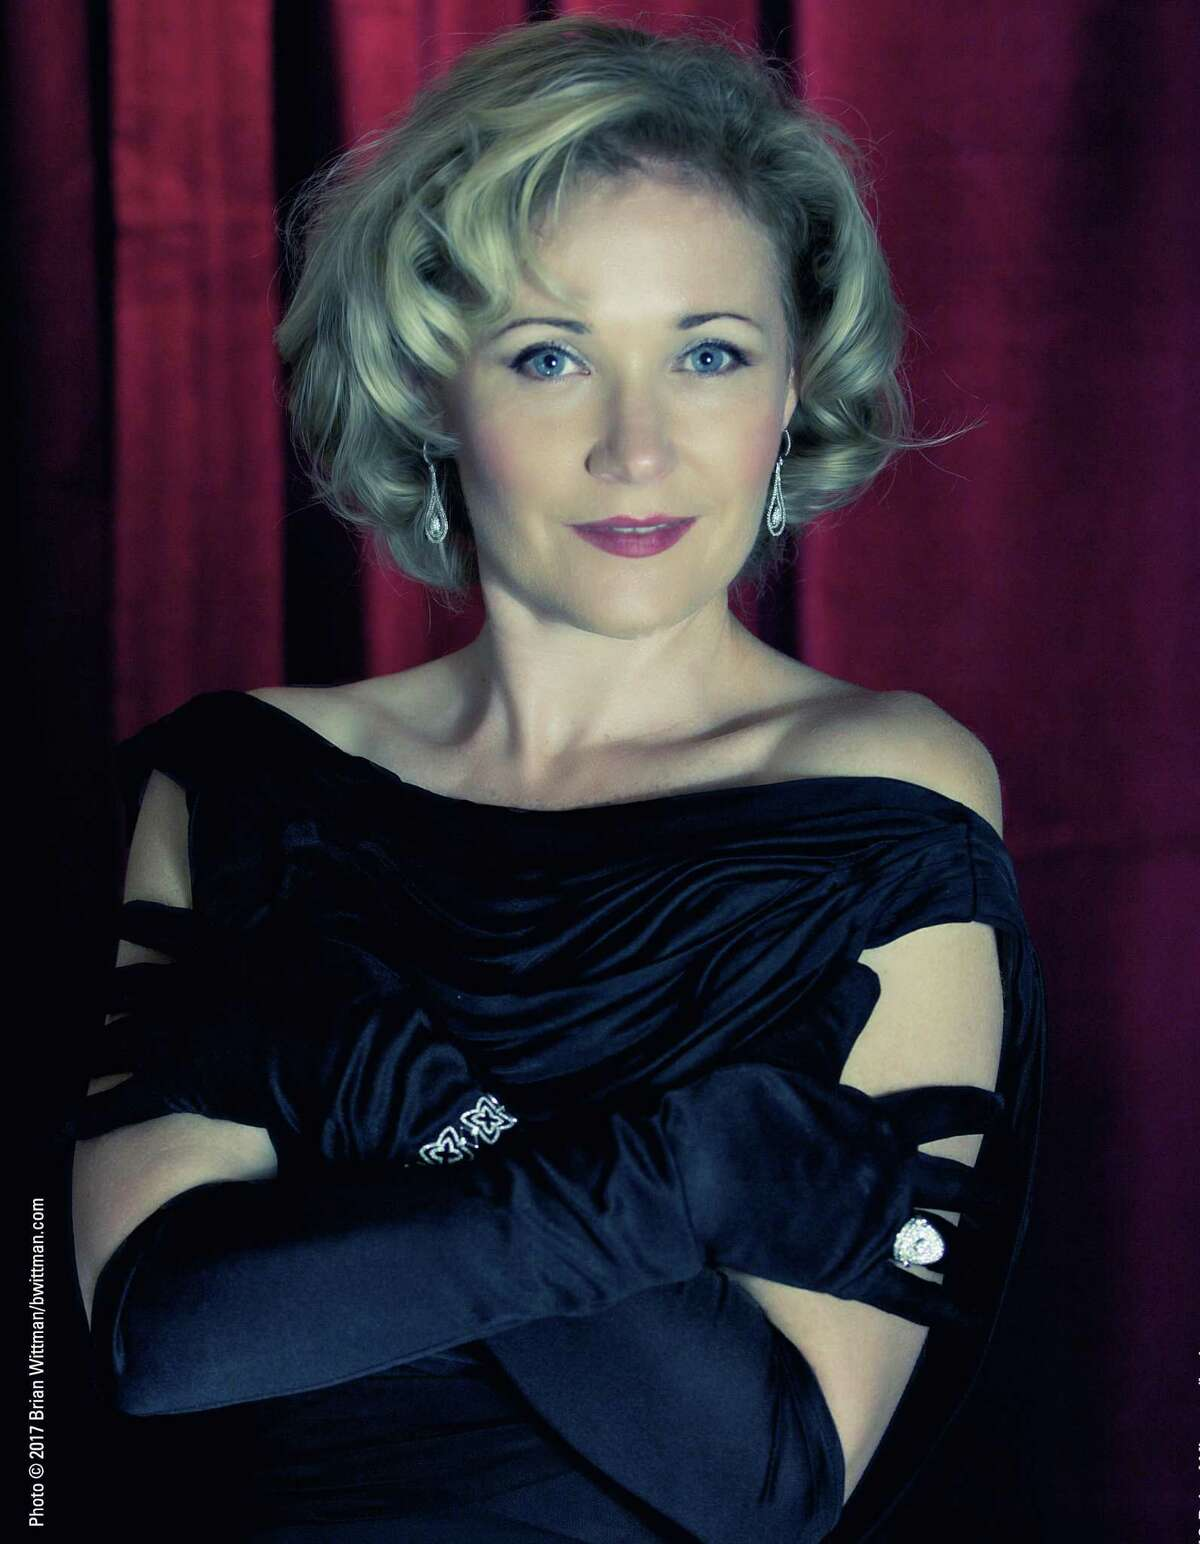 Nicki Parrott and the Nicki Parrott Trio are scheduled to perform March 2 at the Poli Club at the Palace Theater in Waterbury.